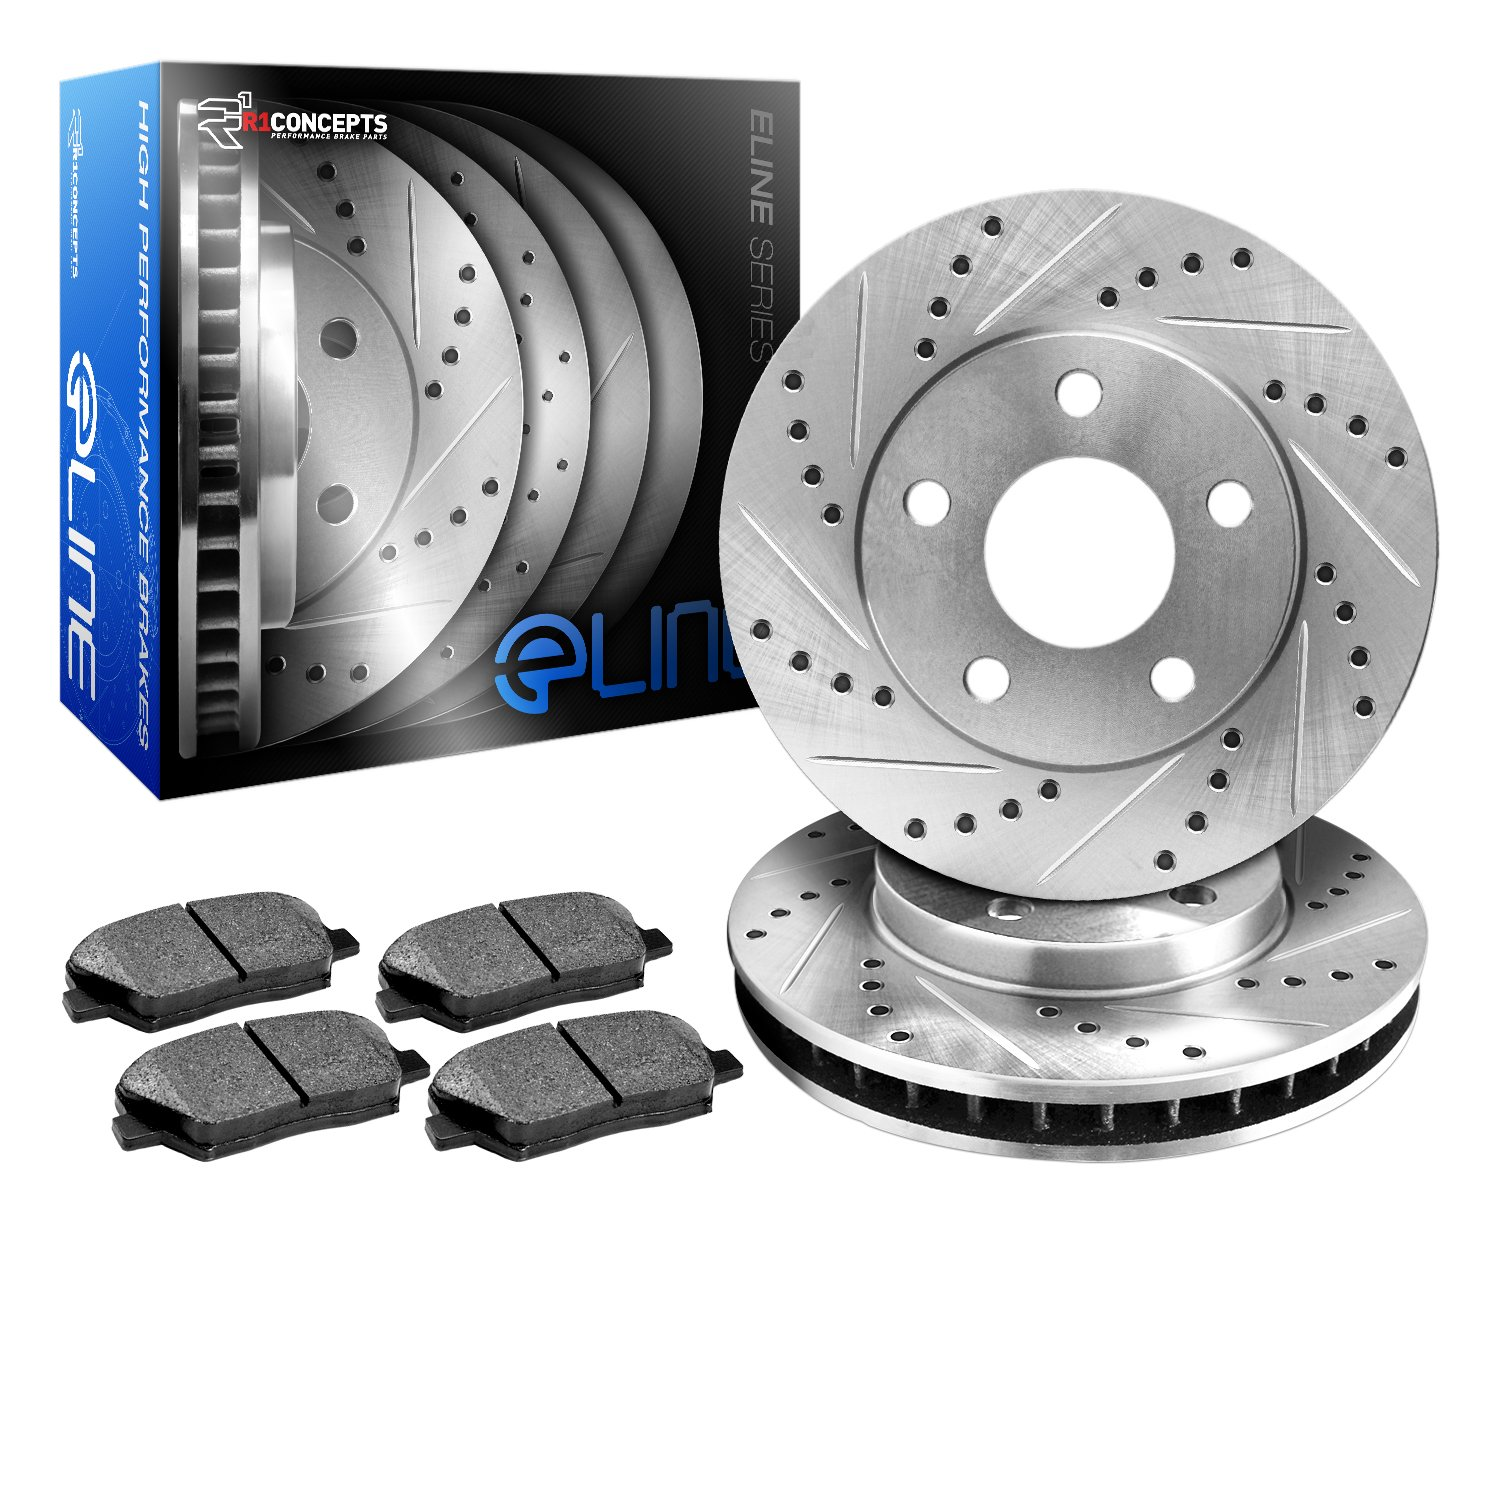 R1 Concepts KEDS10709 Eline Series Cross-Drilled Slotted Rotors And Ceramic Pads Kit - Front R1Concepts